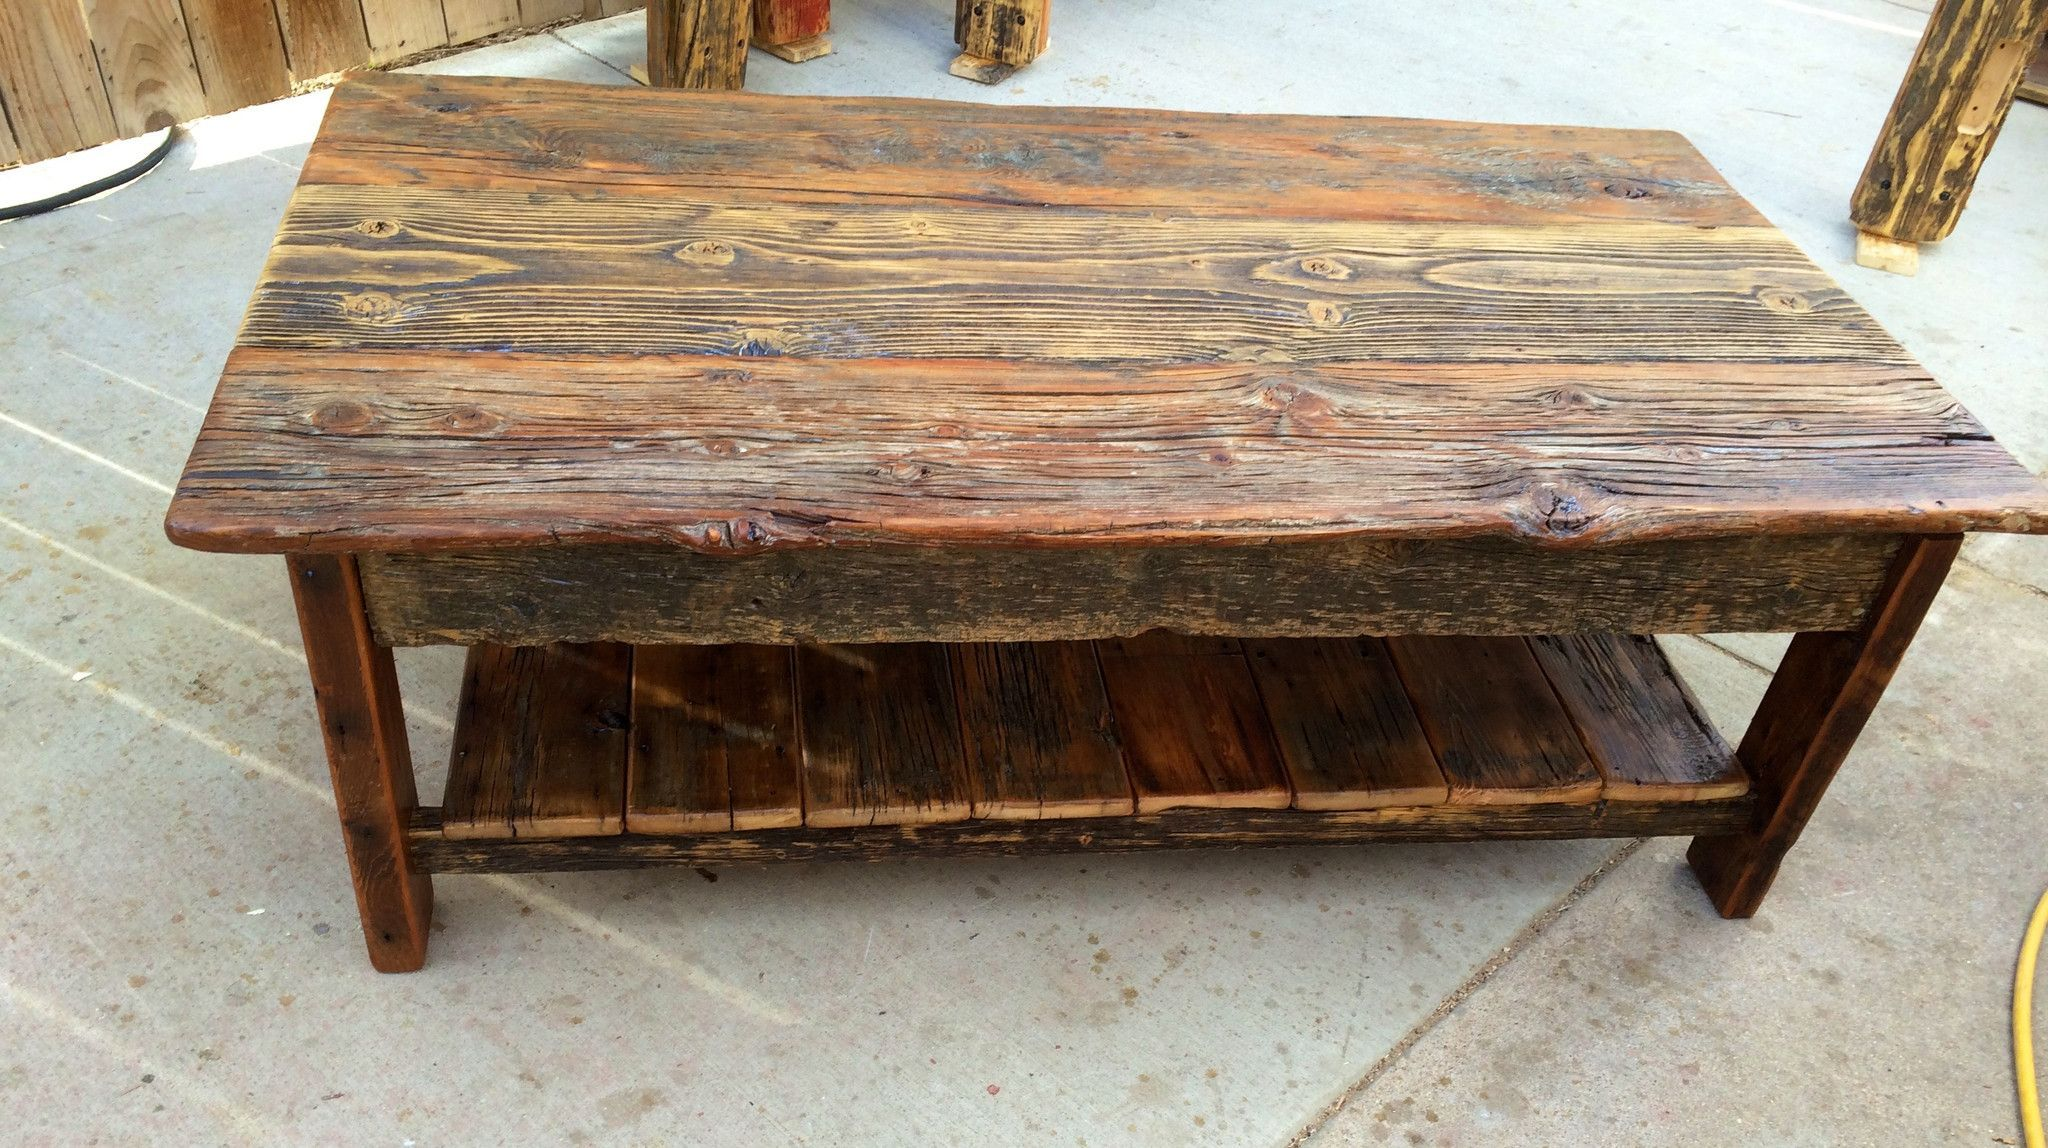 Barn Wood Coffee Table Coffee Table Wood Barnwood Coffee Table